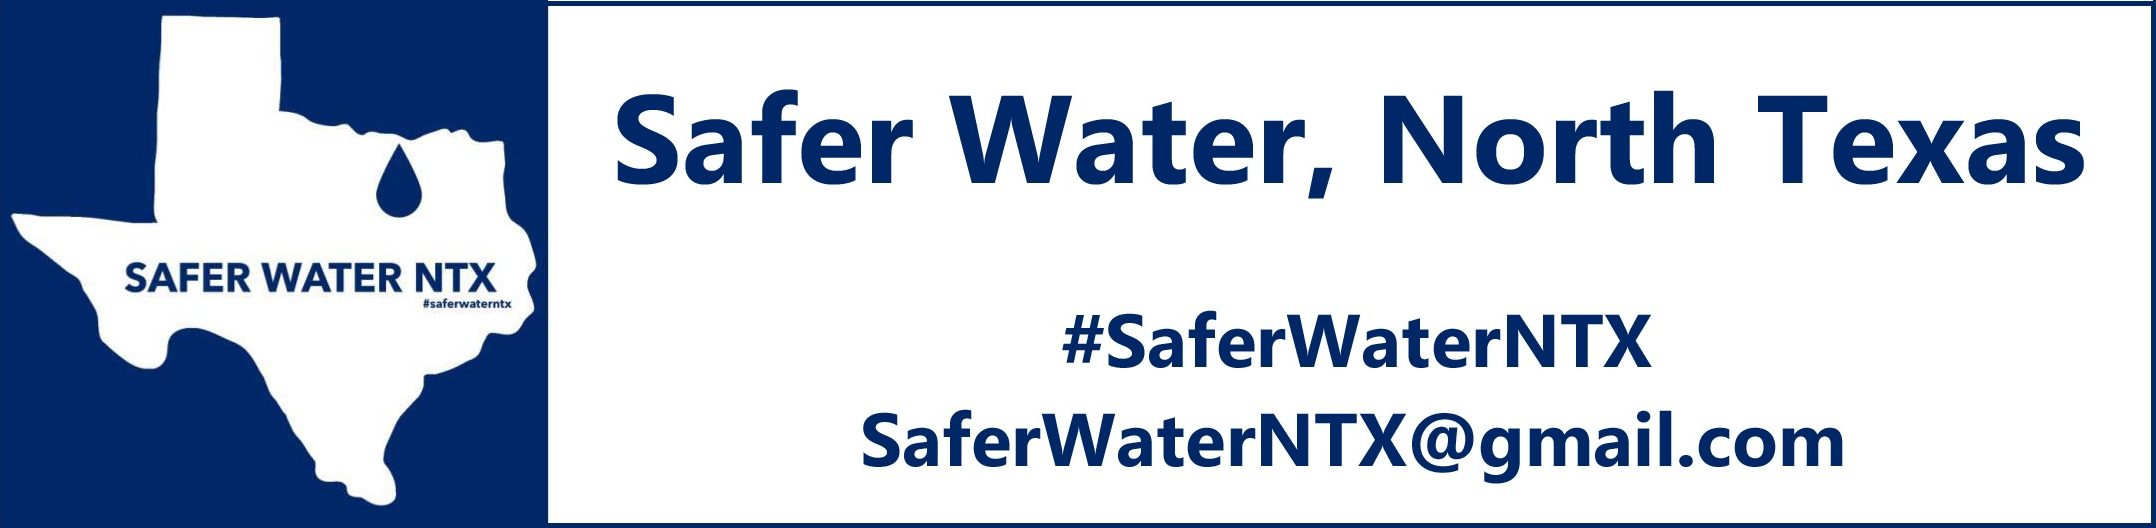 Safer Water, North Texas